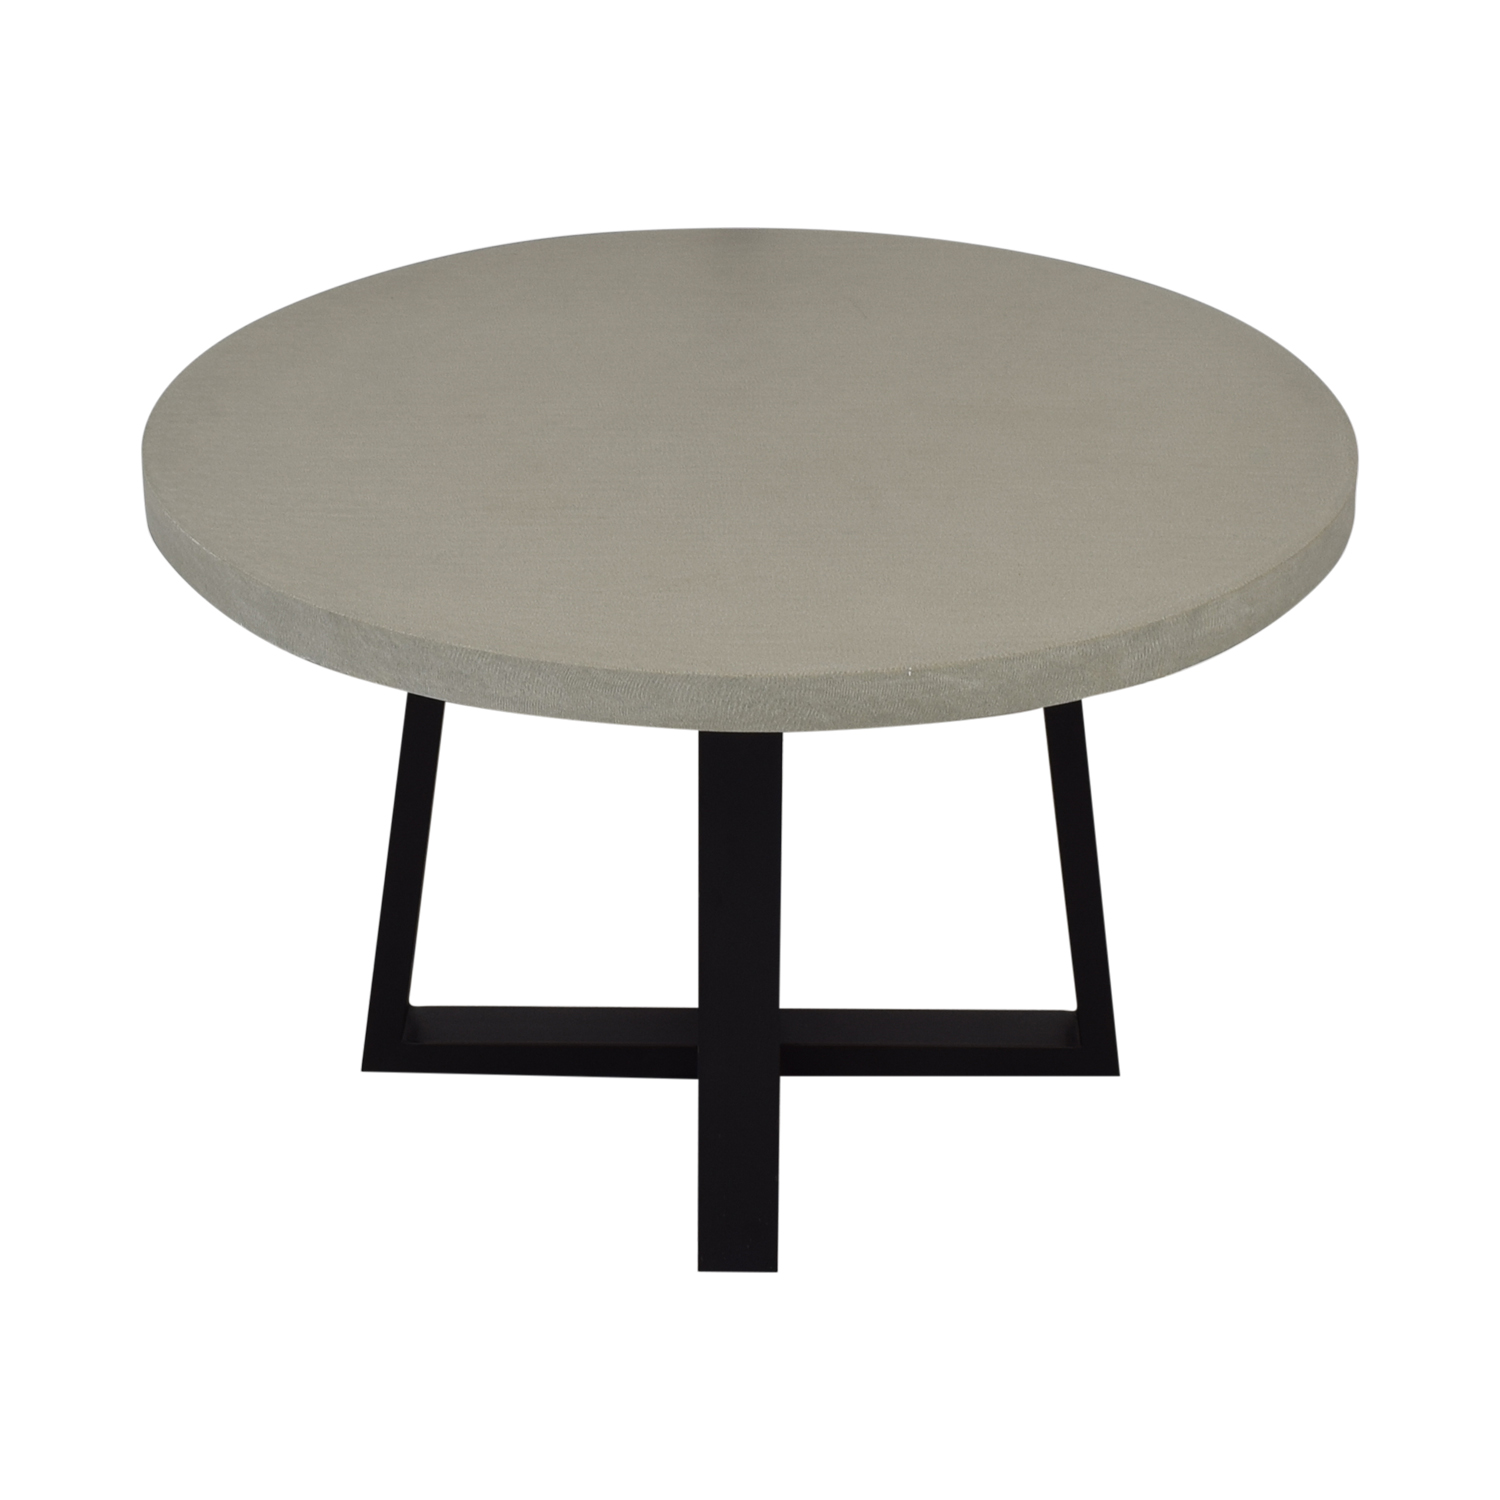 West Elm West Elm Round Slab Outdoor Dining Table dimensions